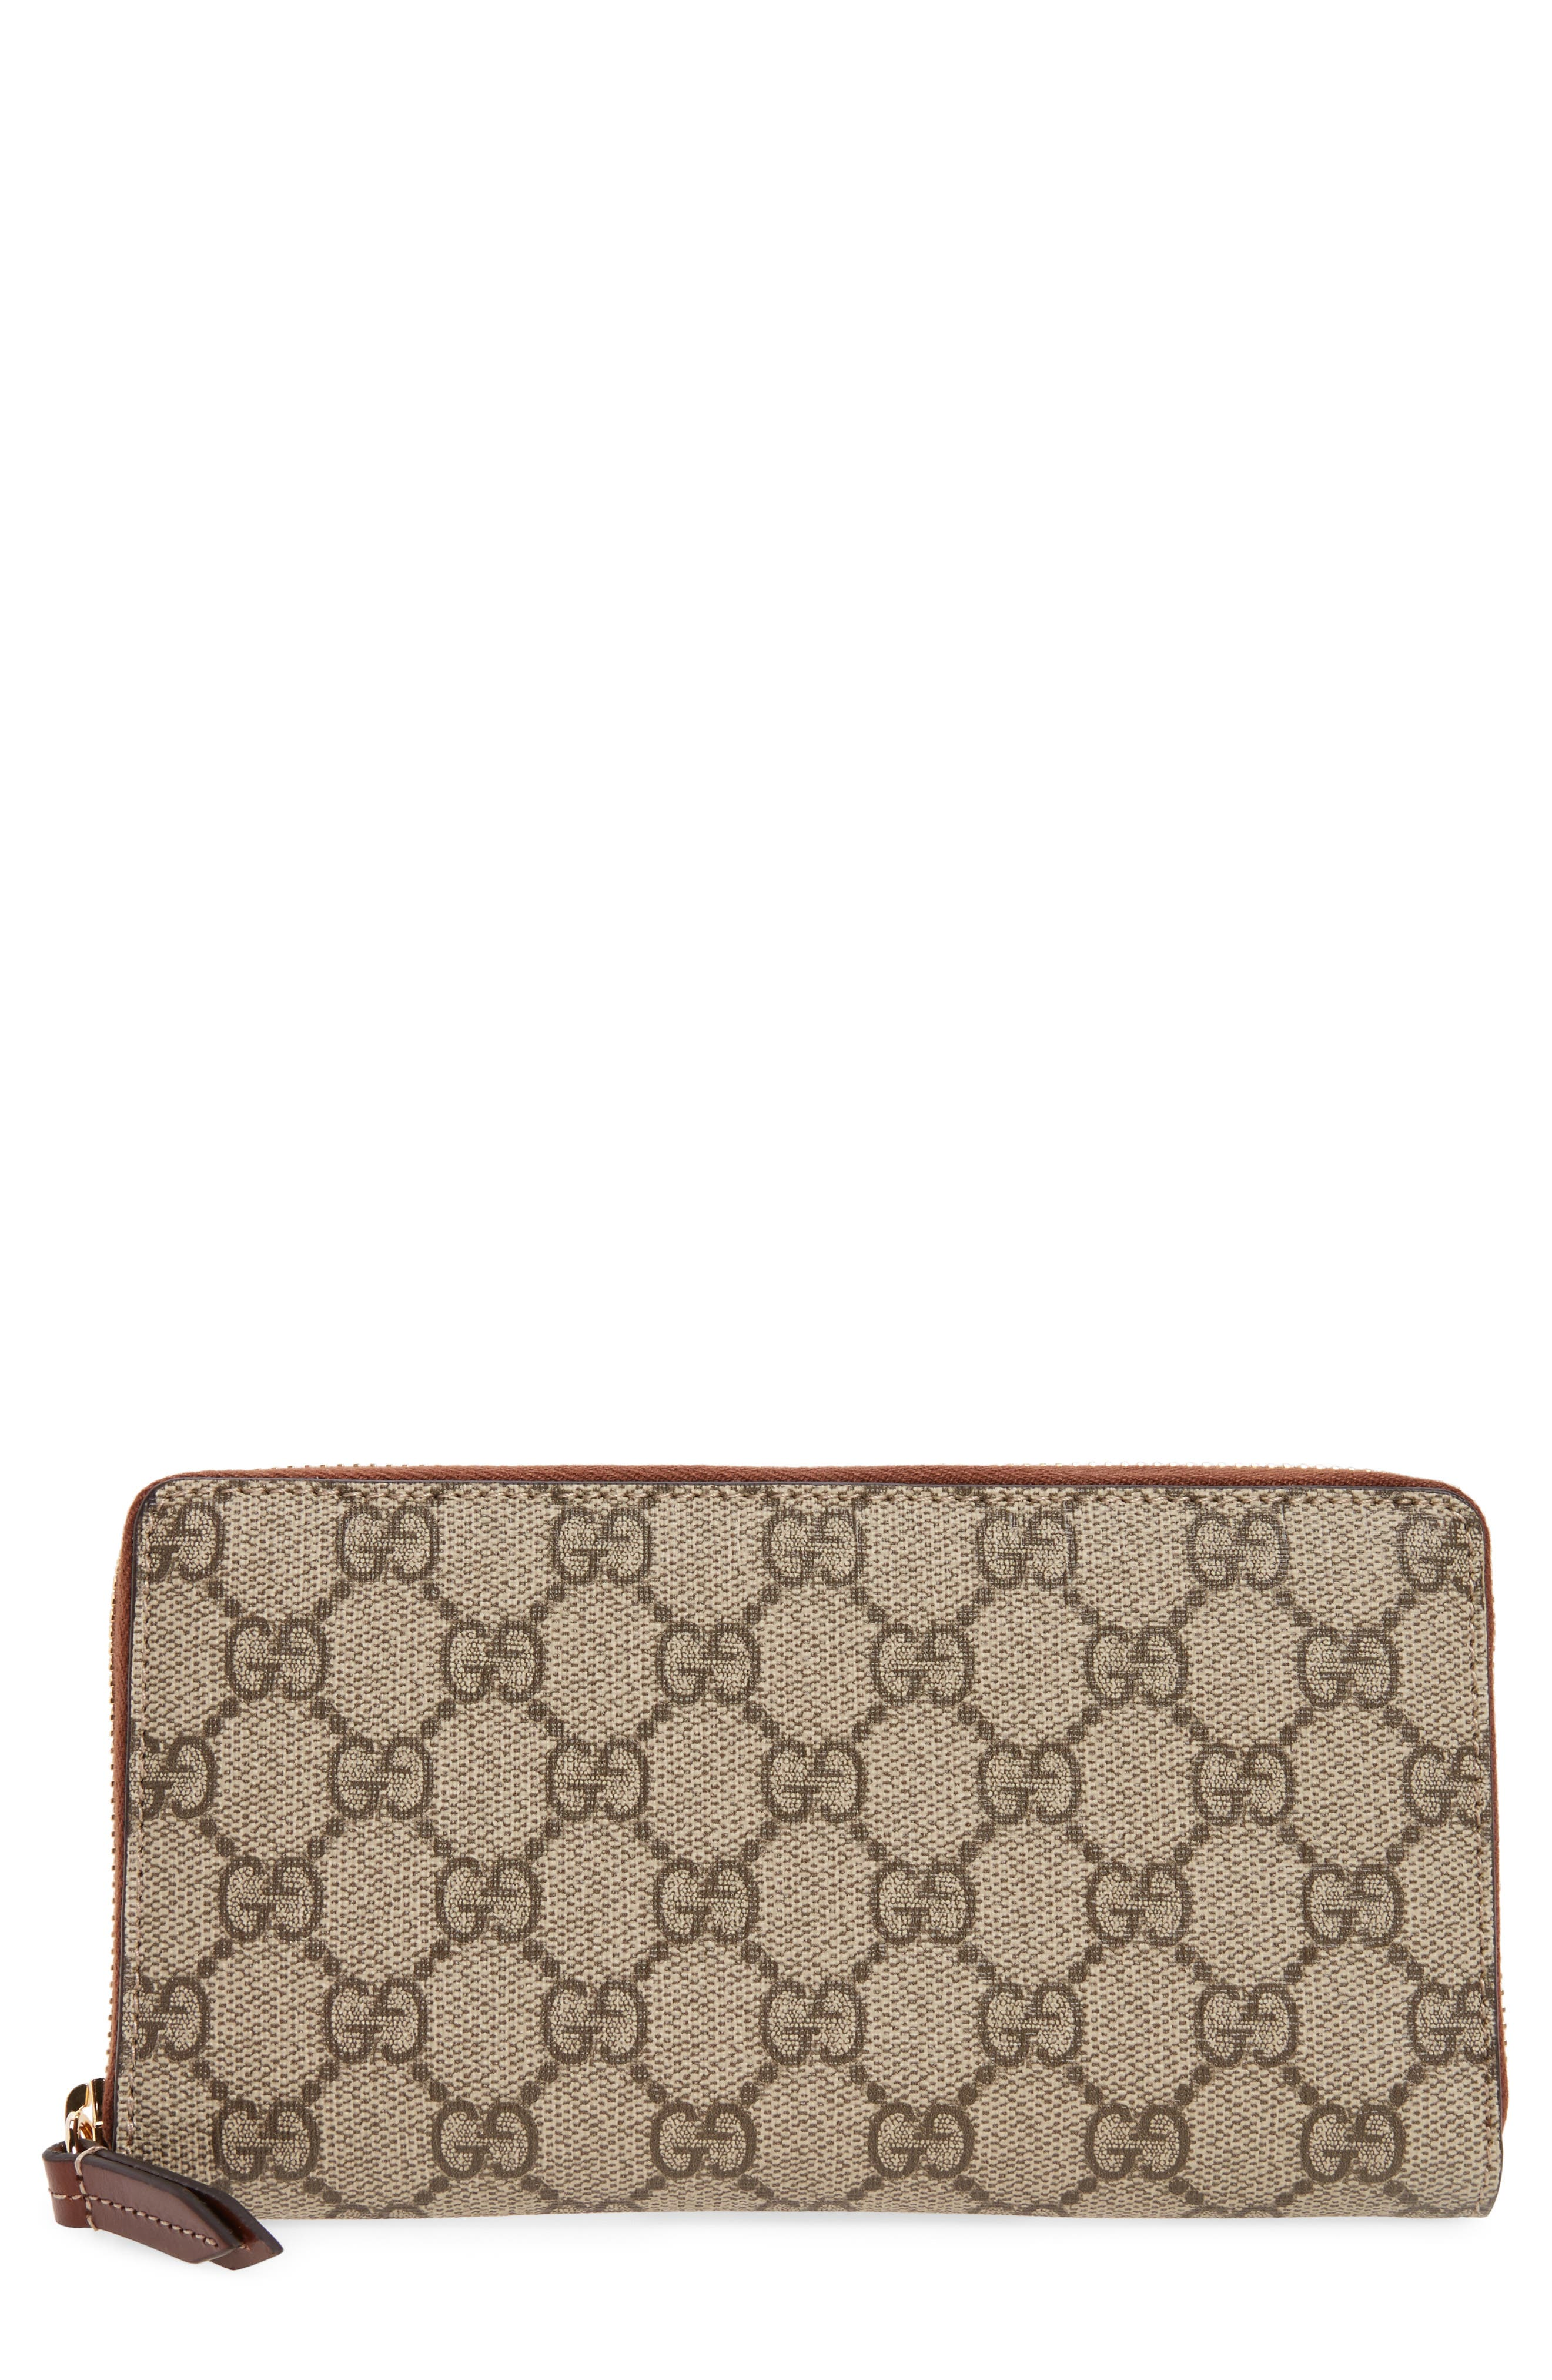 Gucci GG Supreme Zip Around Canvas Wallet